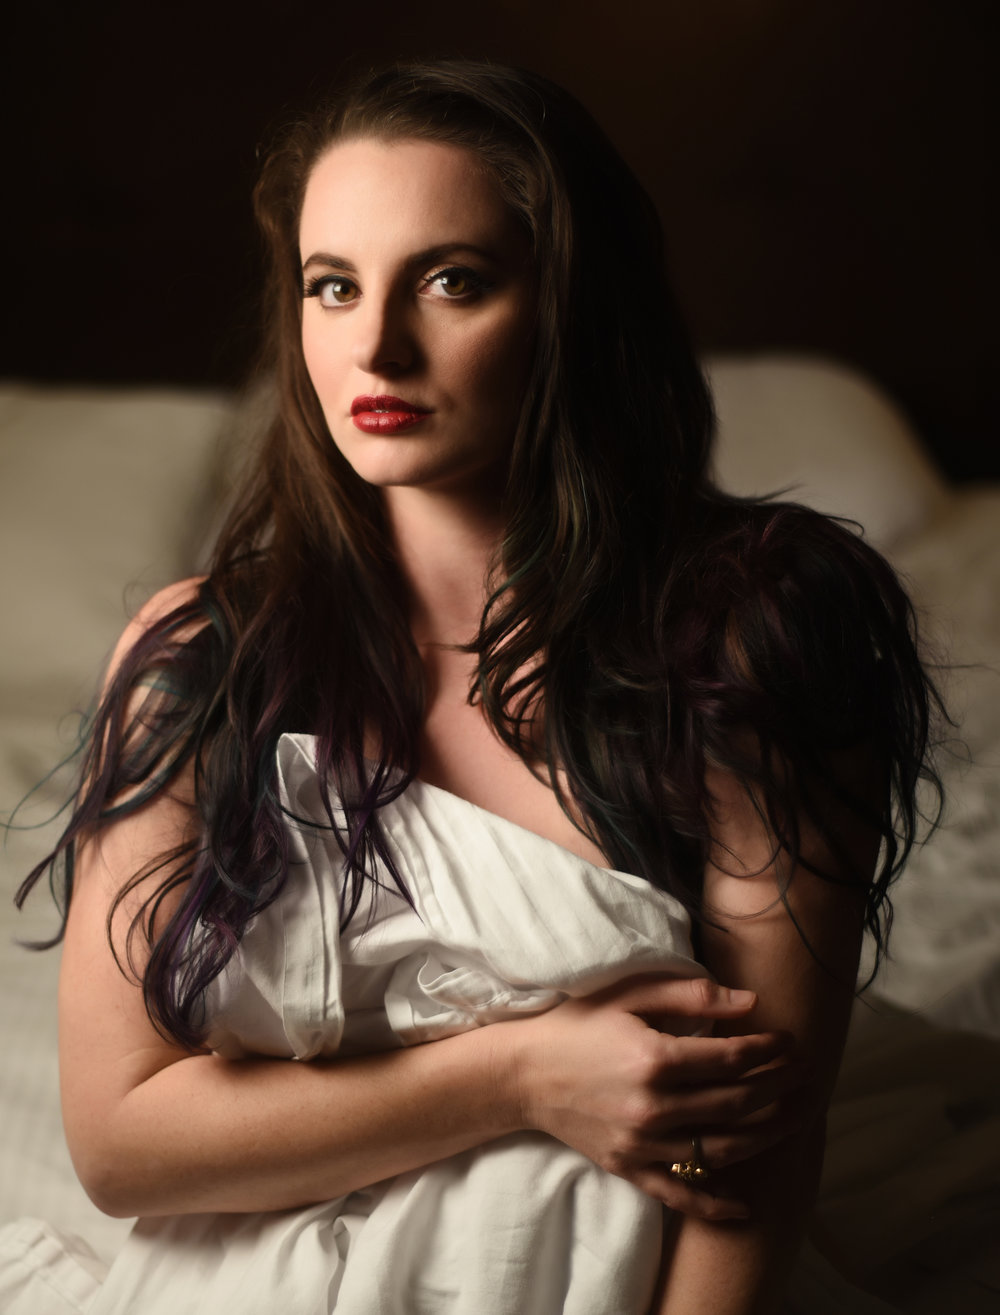 Between the Sheets Boudoir Portraits in Denver by La Photographie 04.jpg